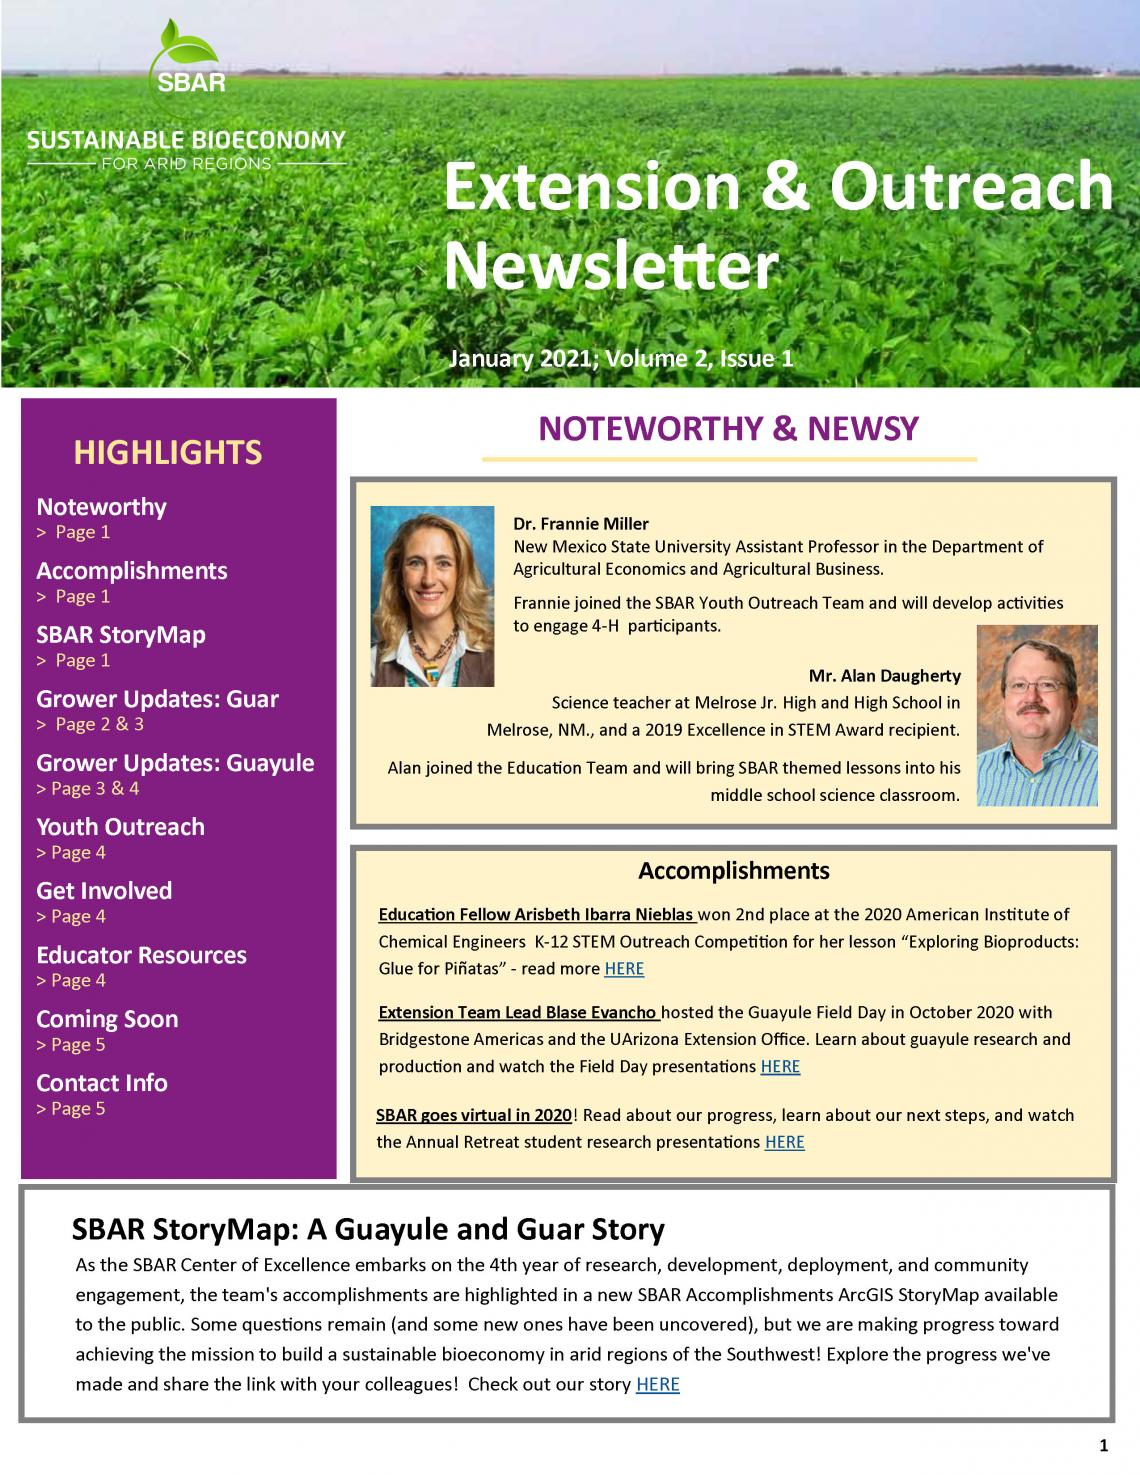 SBAR Extension and Outreach Newsletter Jan 2021